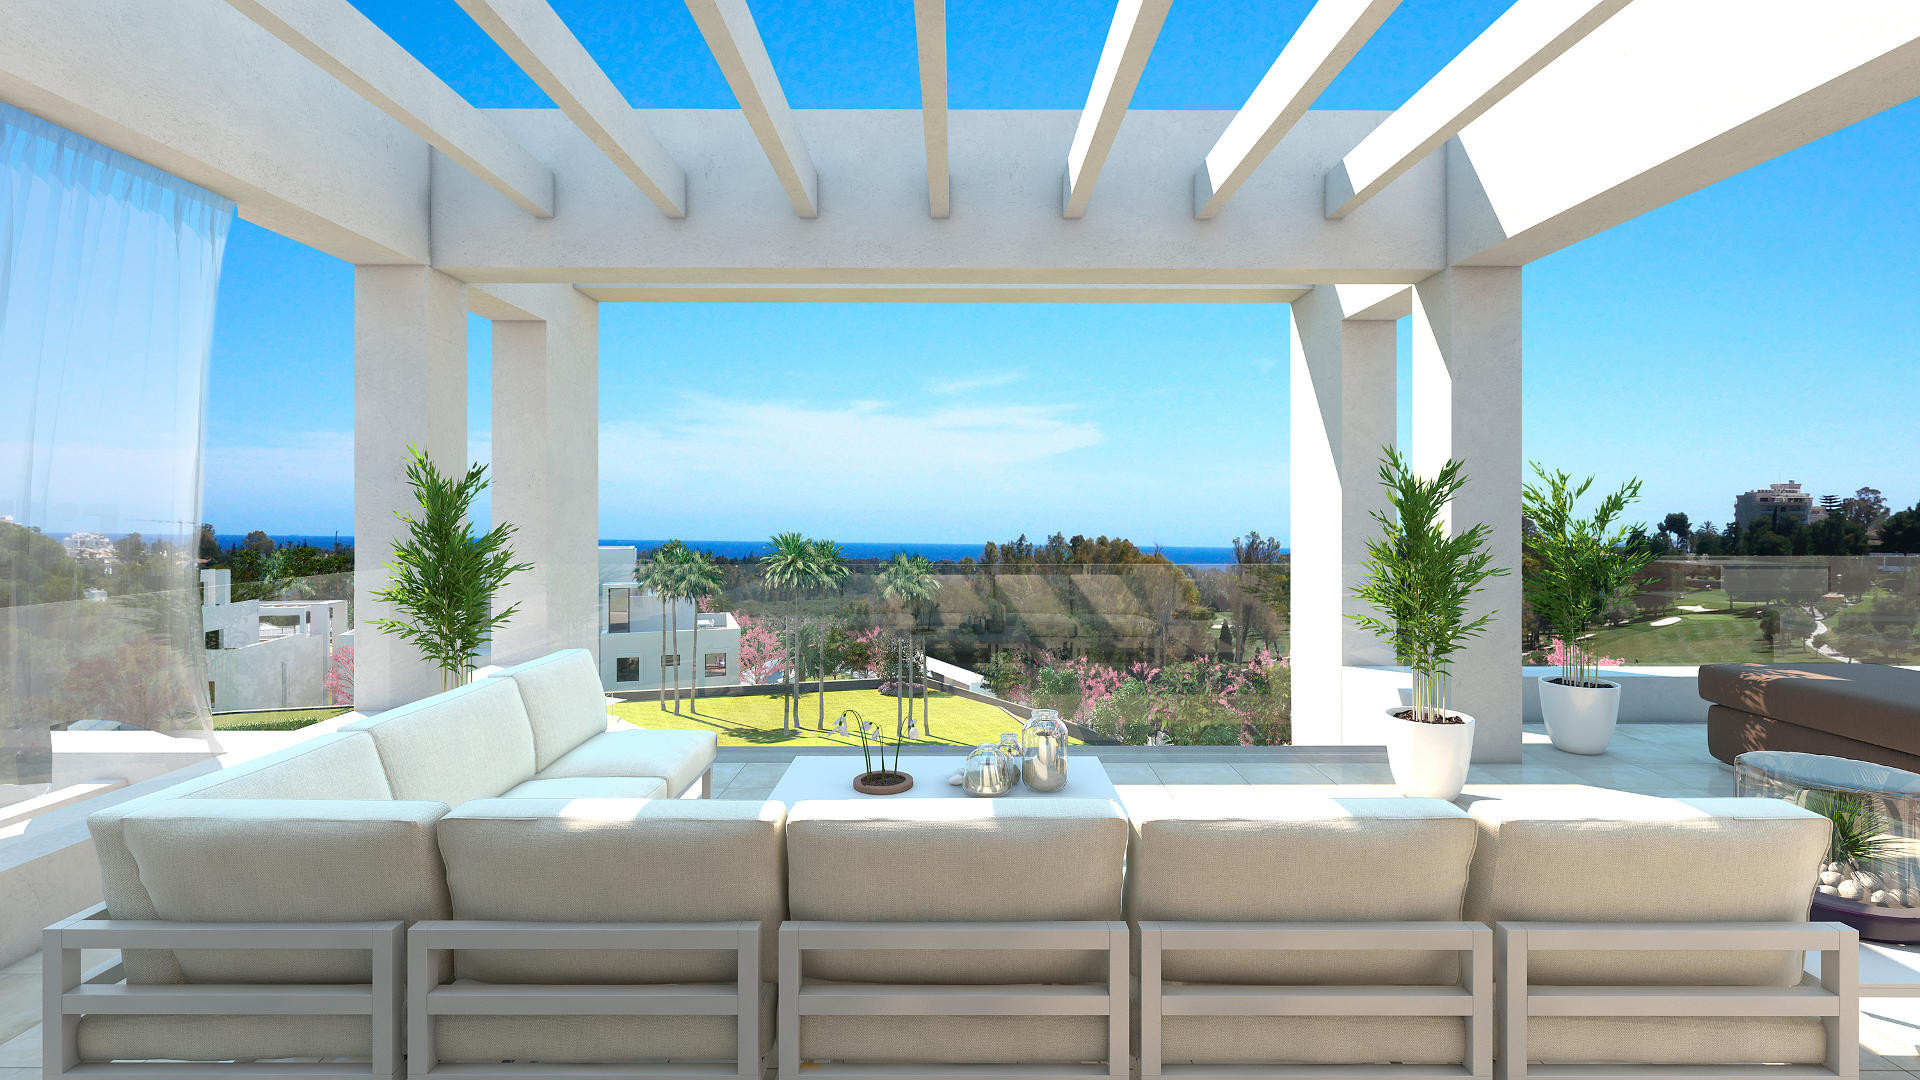 Duplex Penthouse for sale in <i>Atalaya Golf, </i>Estepona